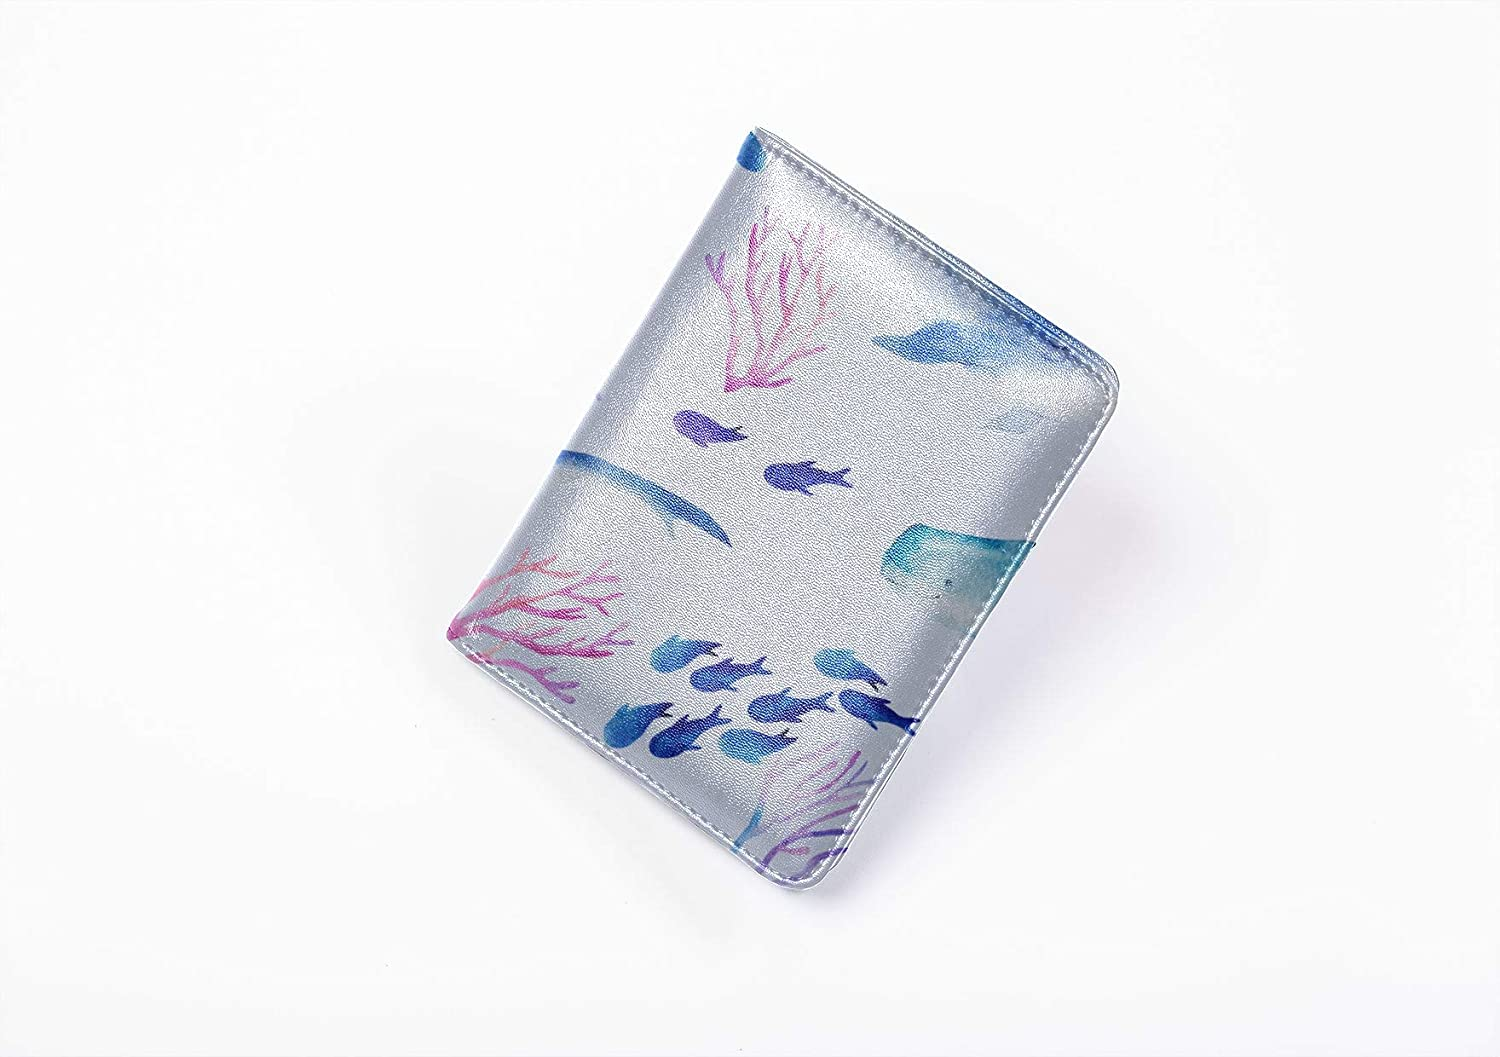 Funny Passport Cover Fashion Delicious Funny Fish Squid Waterproof Passport Case Multi Purpose Print Unique Passport Cover Travel Wallets For Unisex 5.51x4.37 Inch